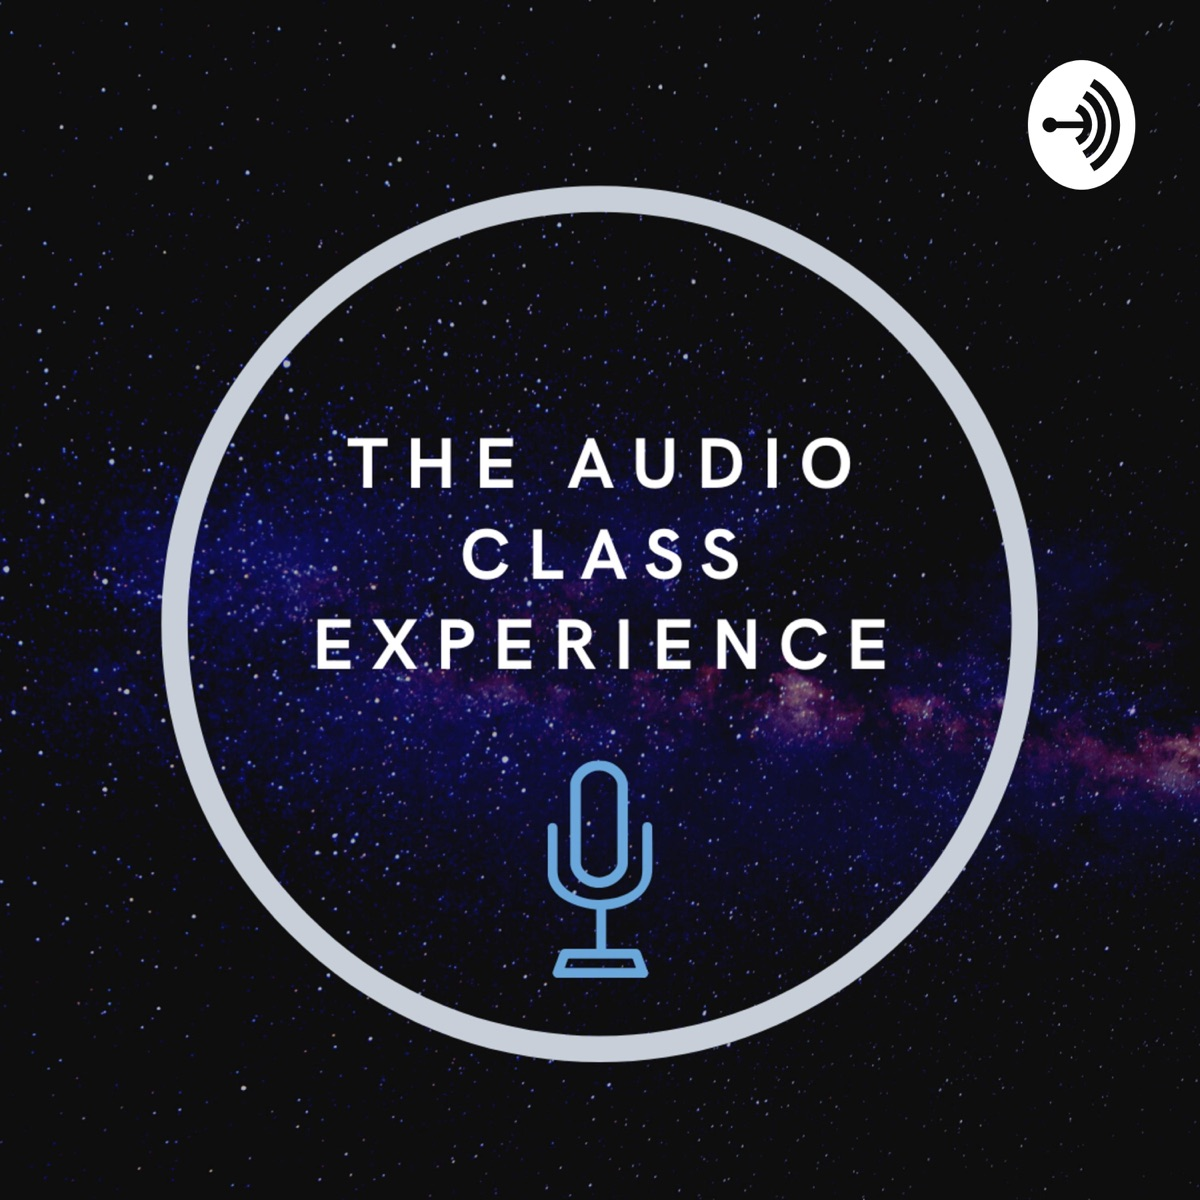 The Audio Class Experience